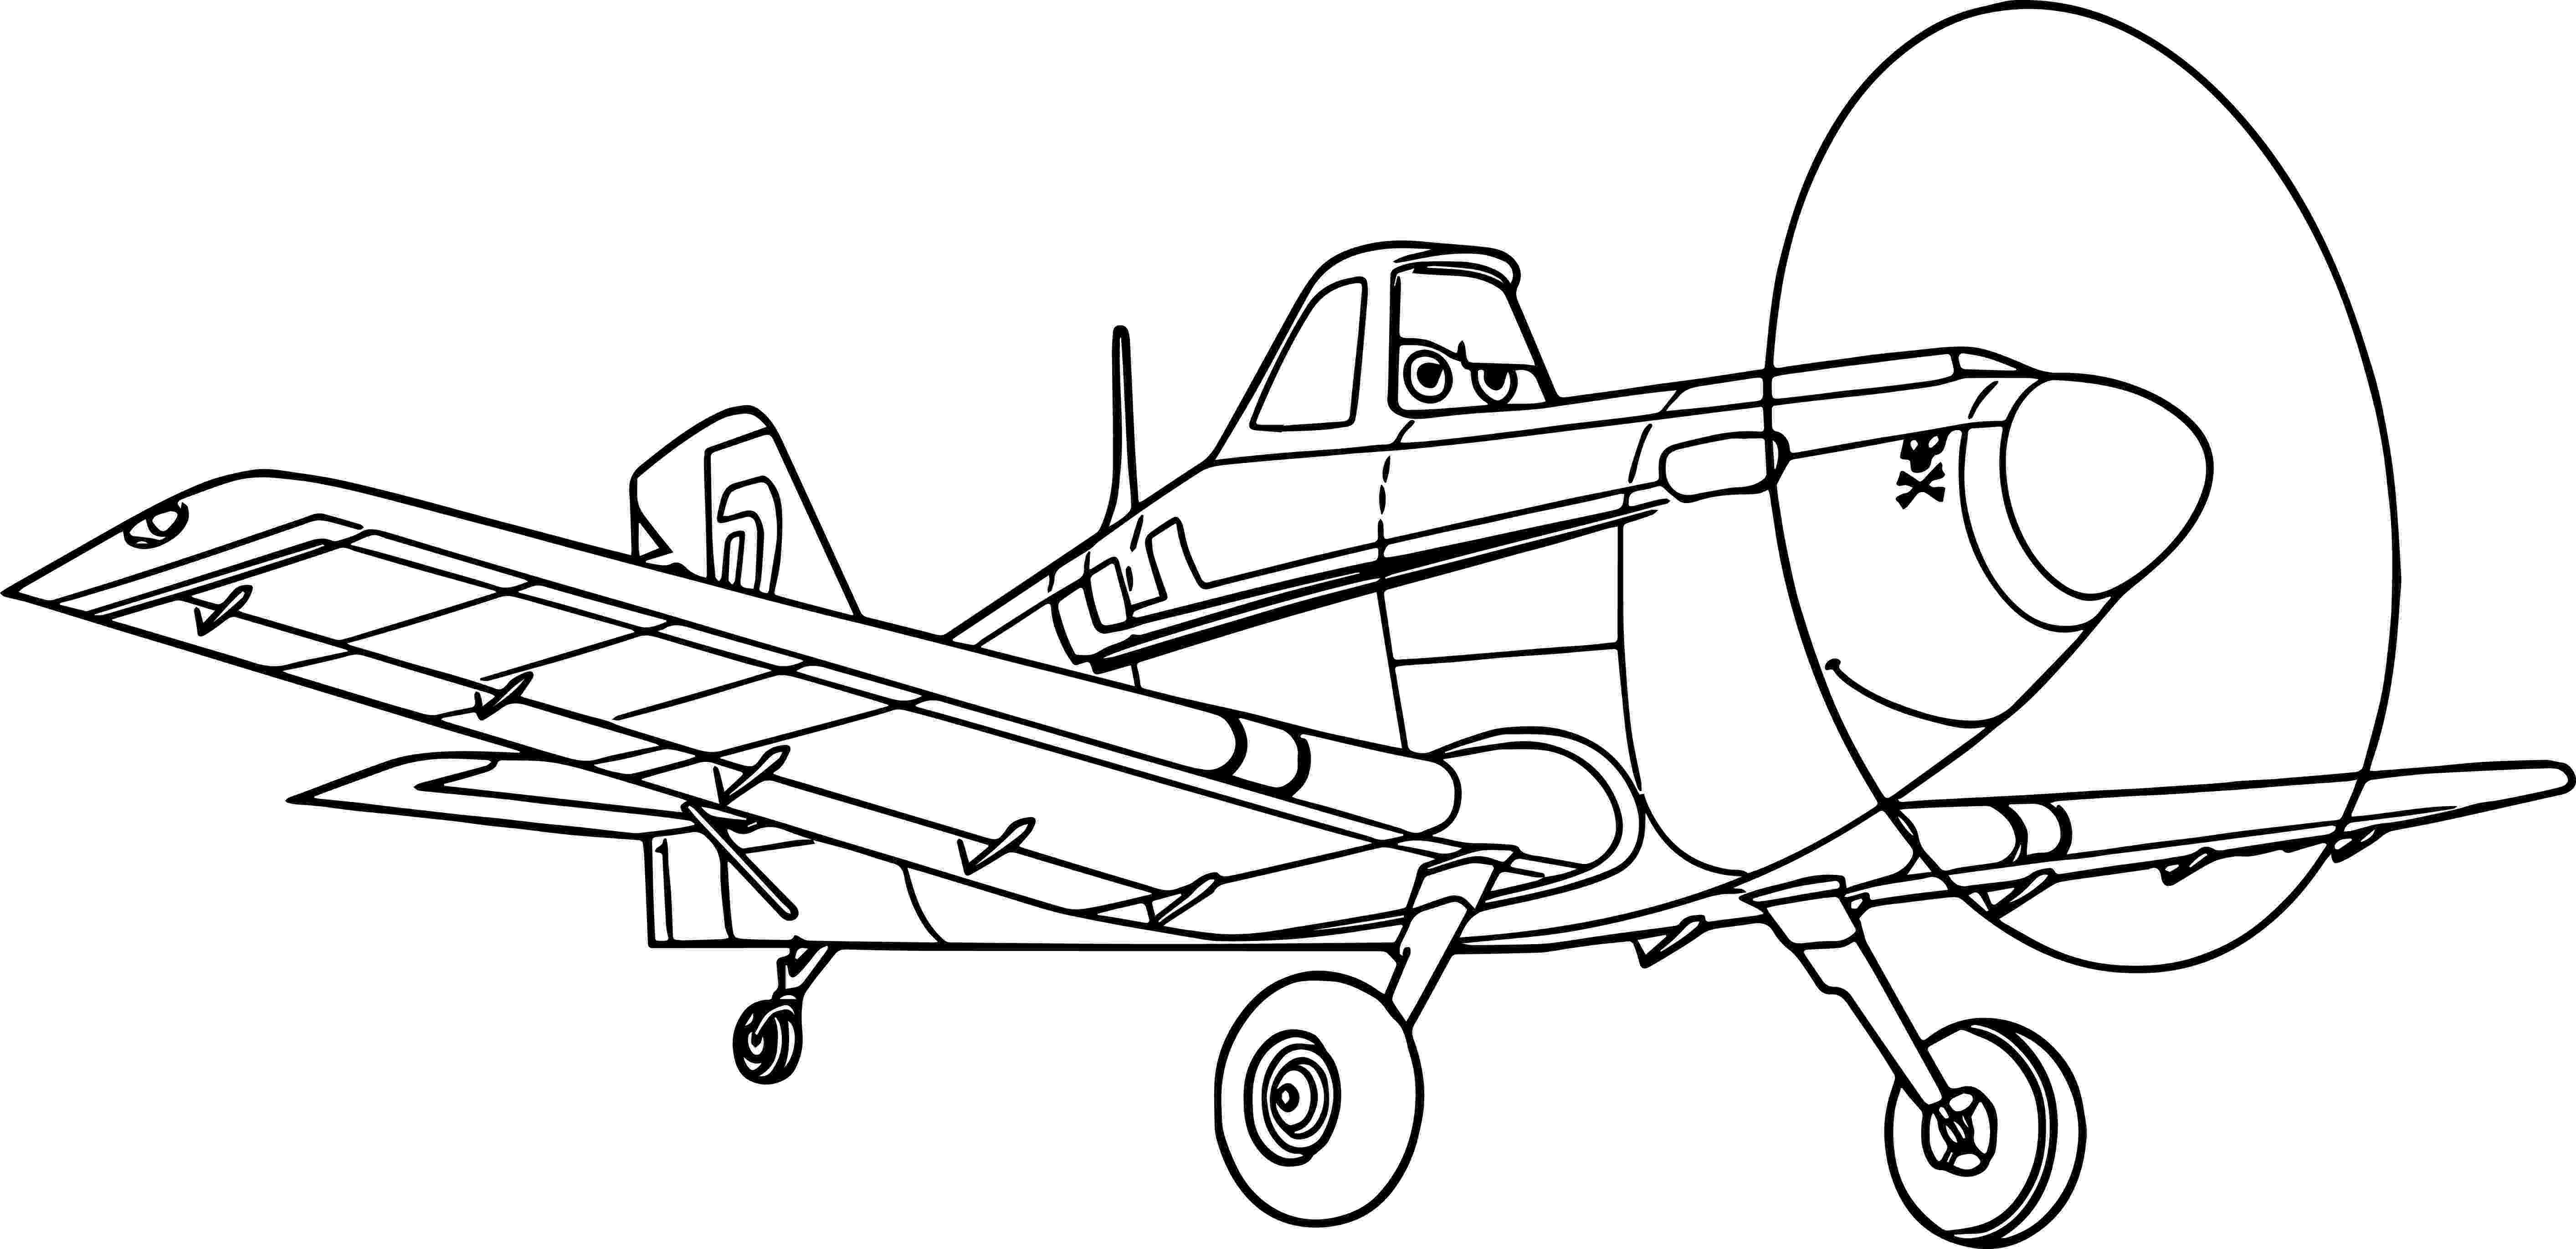 colouring pages disney planes disney planes coloring pages wecoloringpagecom disney pages planes colouring